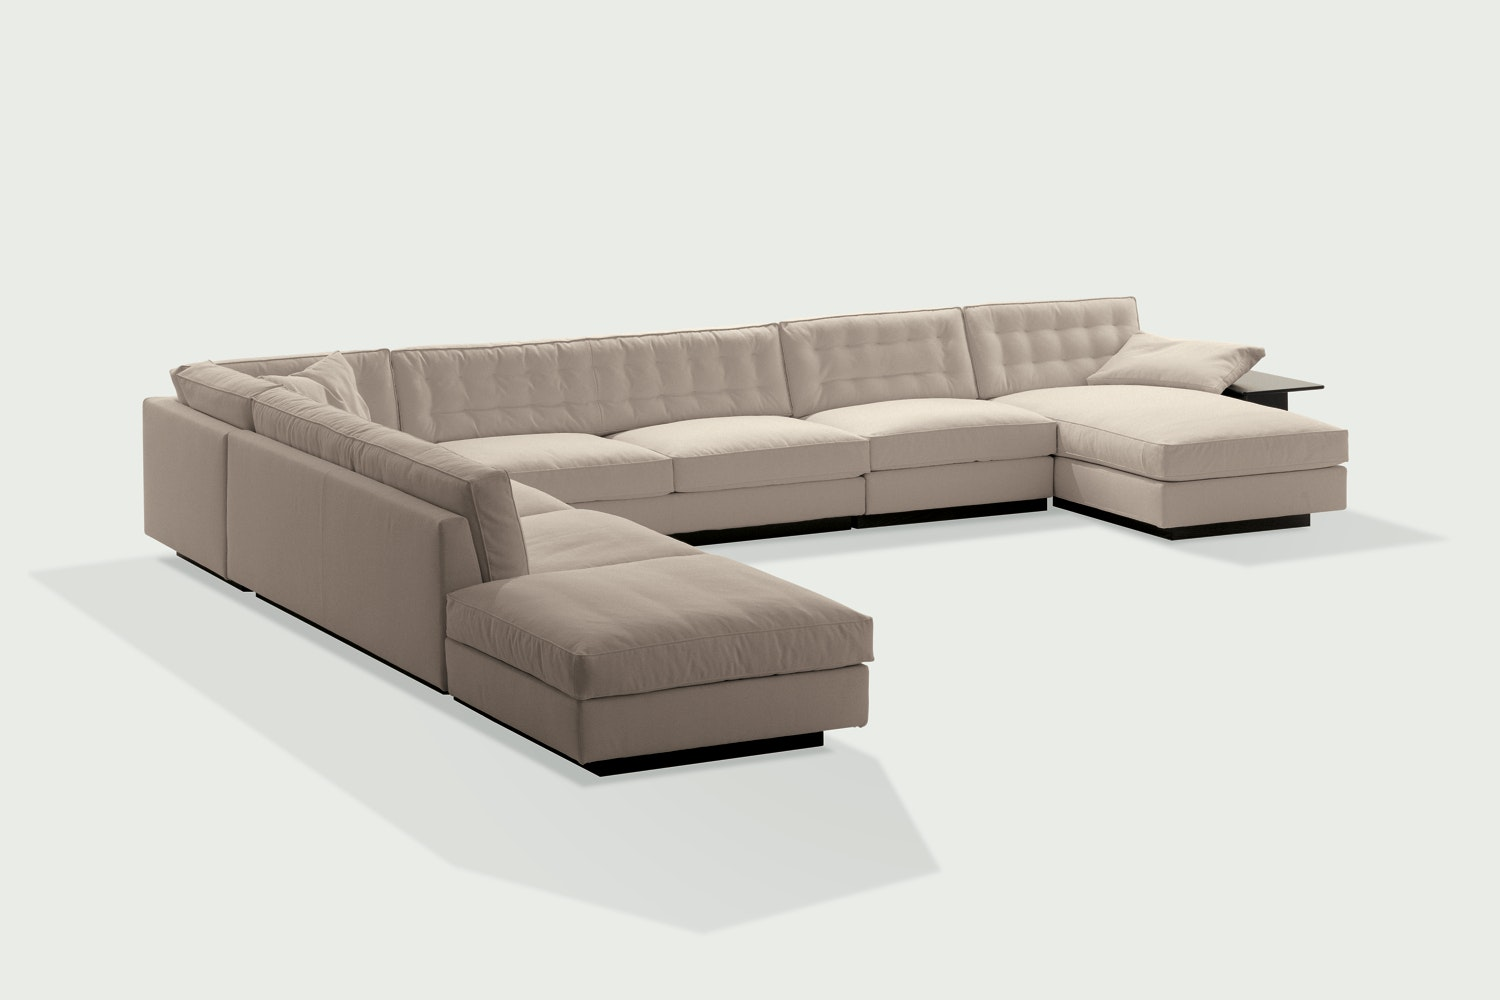 Royal Sofa by Antonello Mosca for Giorgetti